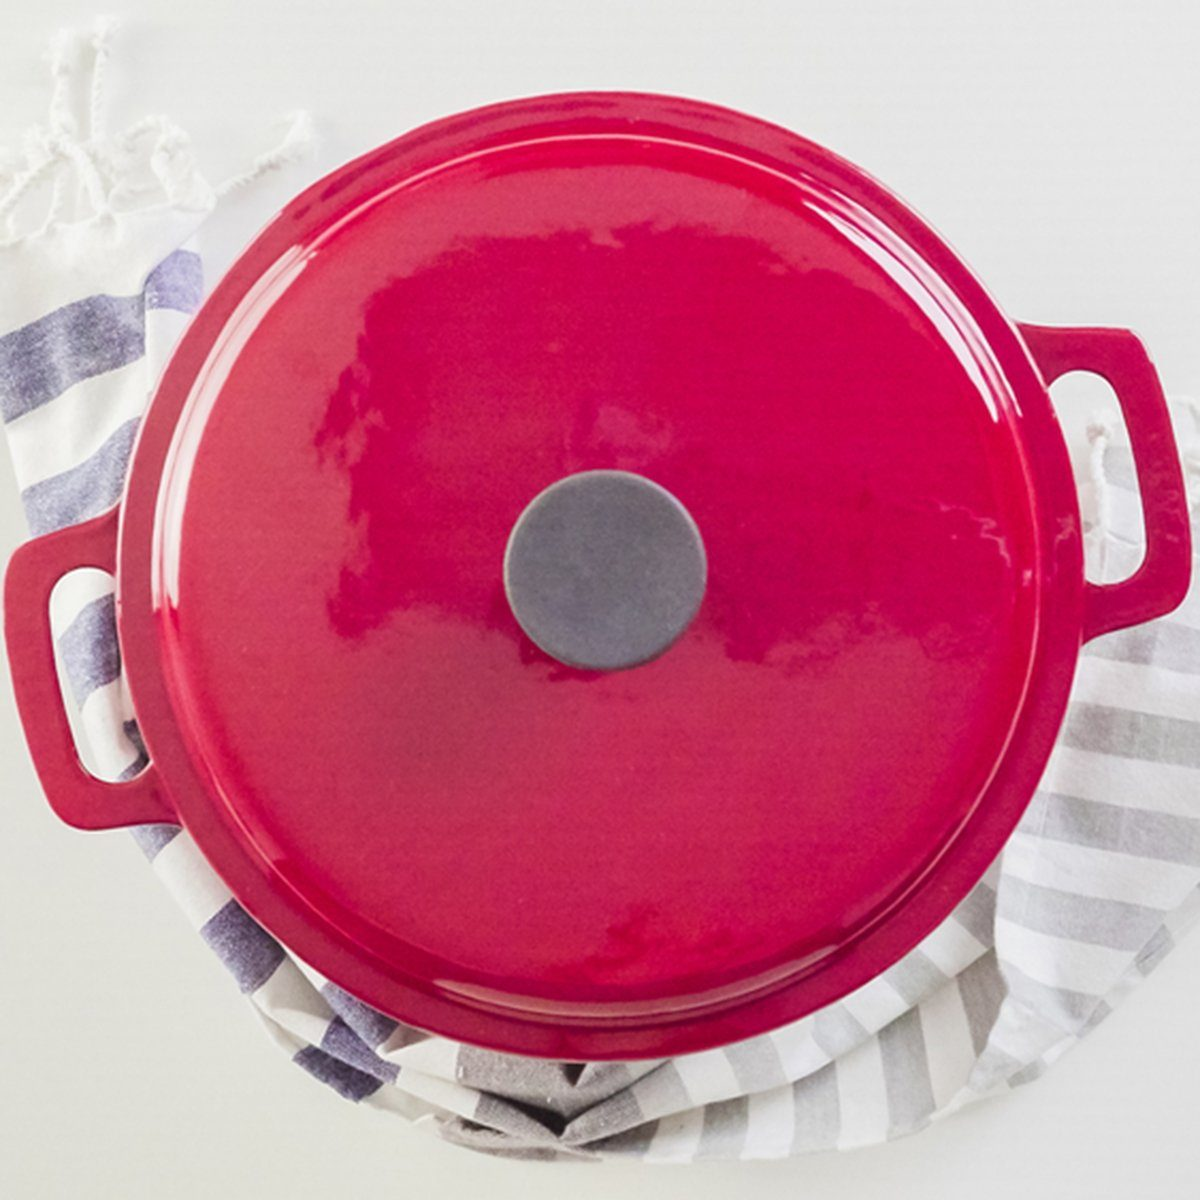 Brand new enameled cast iron covered dutch oven on a white background.